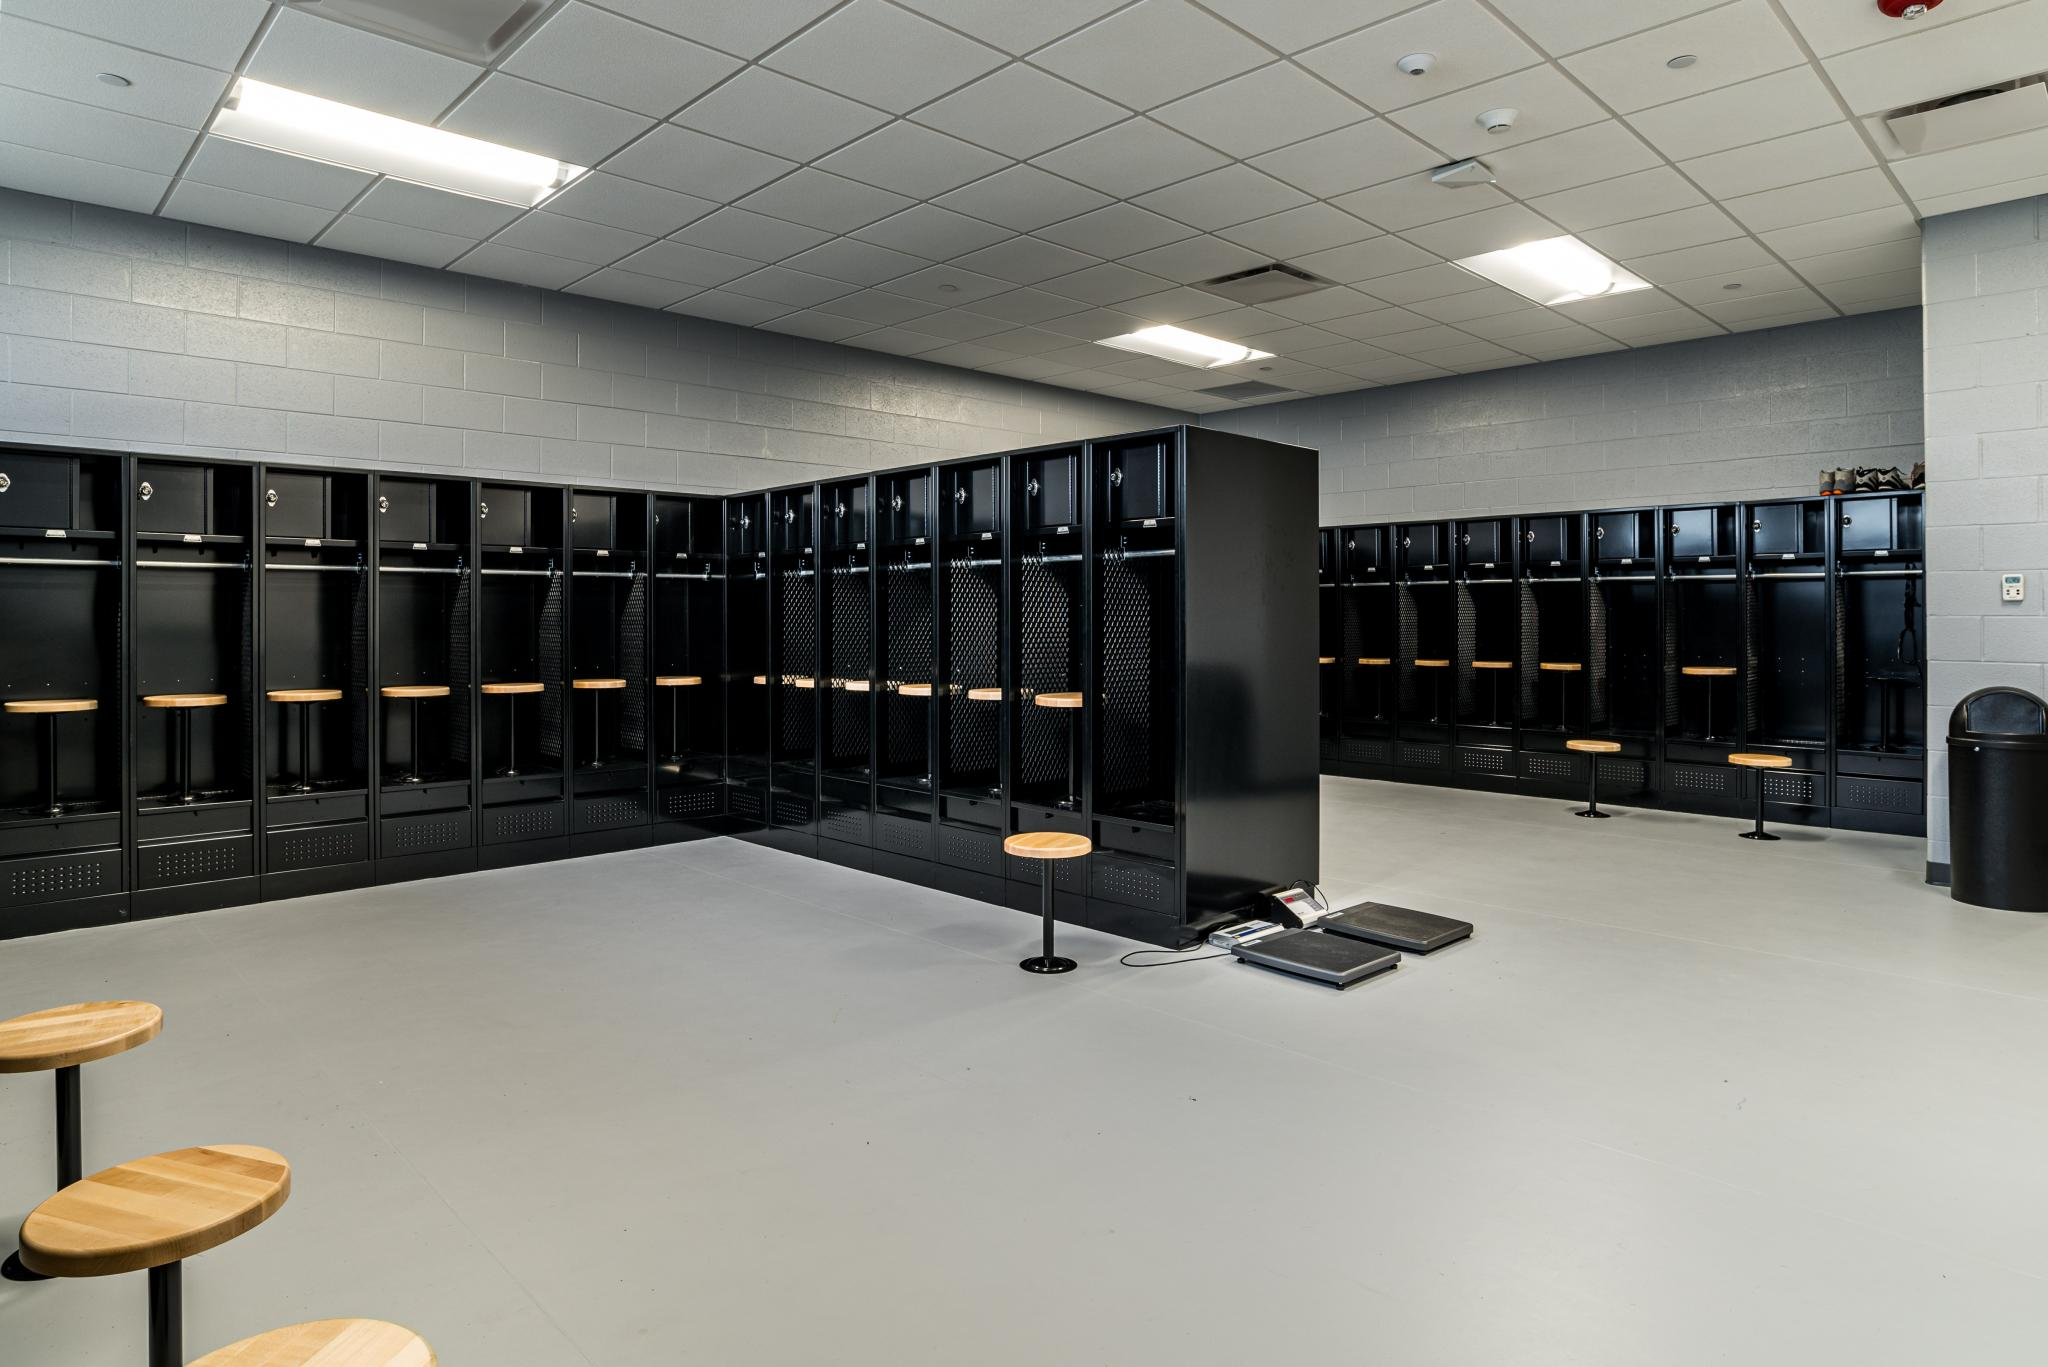 photo of a locker room with black painted lockers